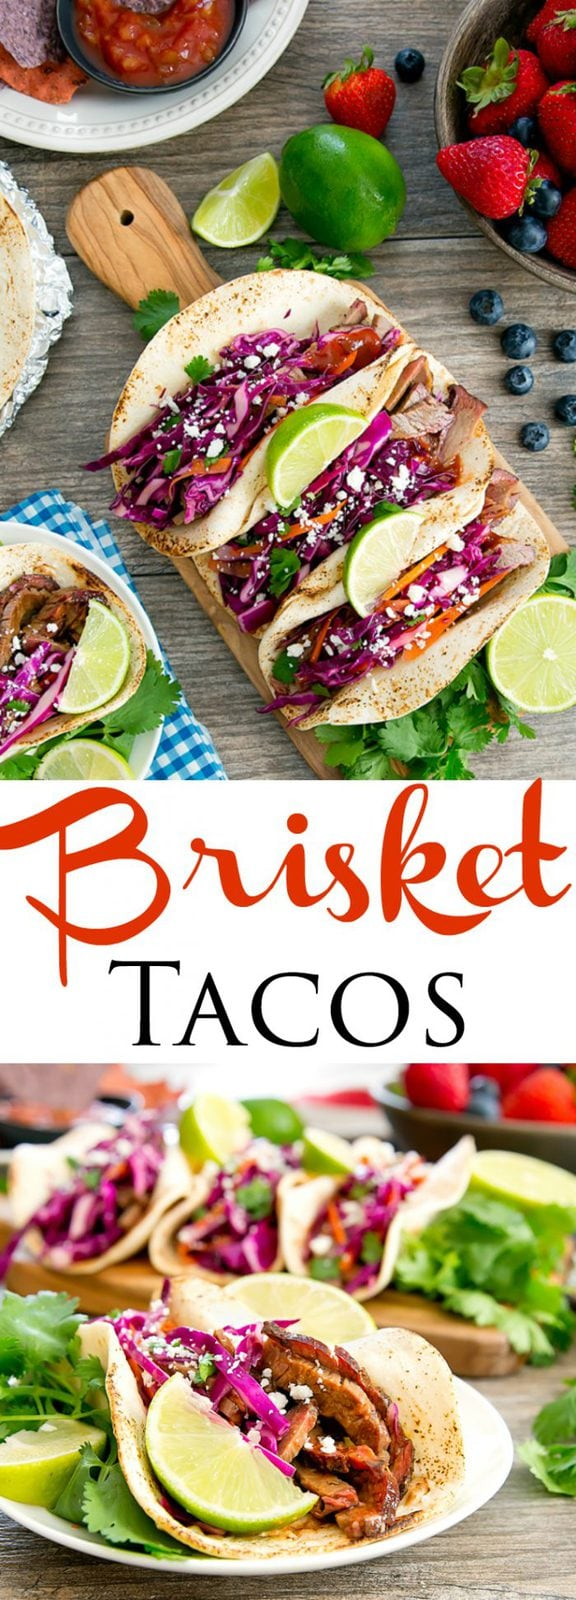 Brisket Tacos with Red Cabbage Carrot Slaw